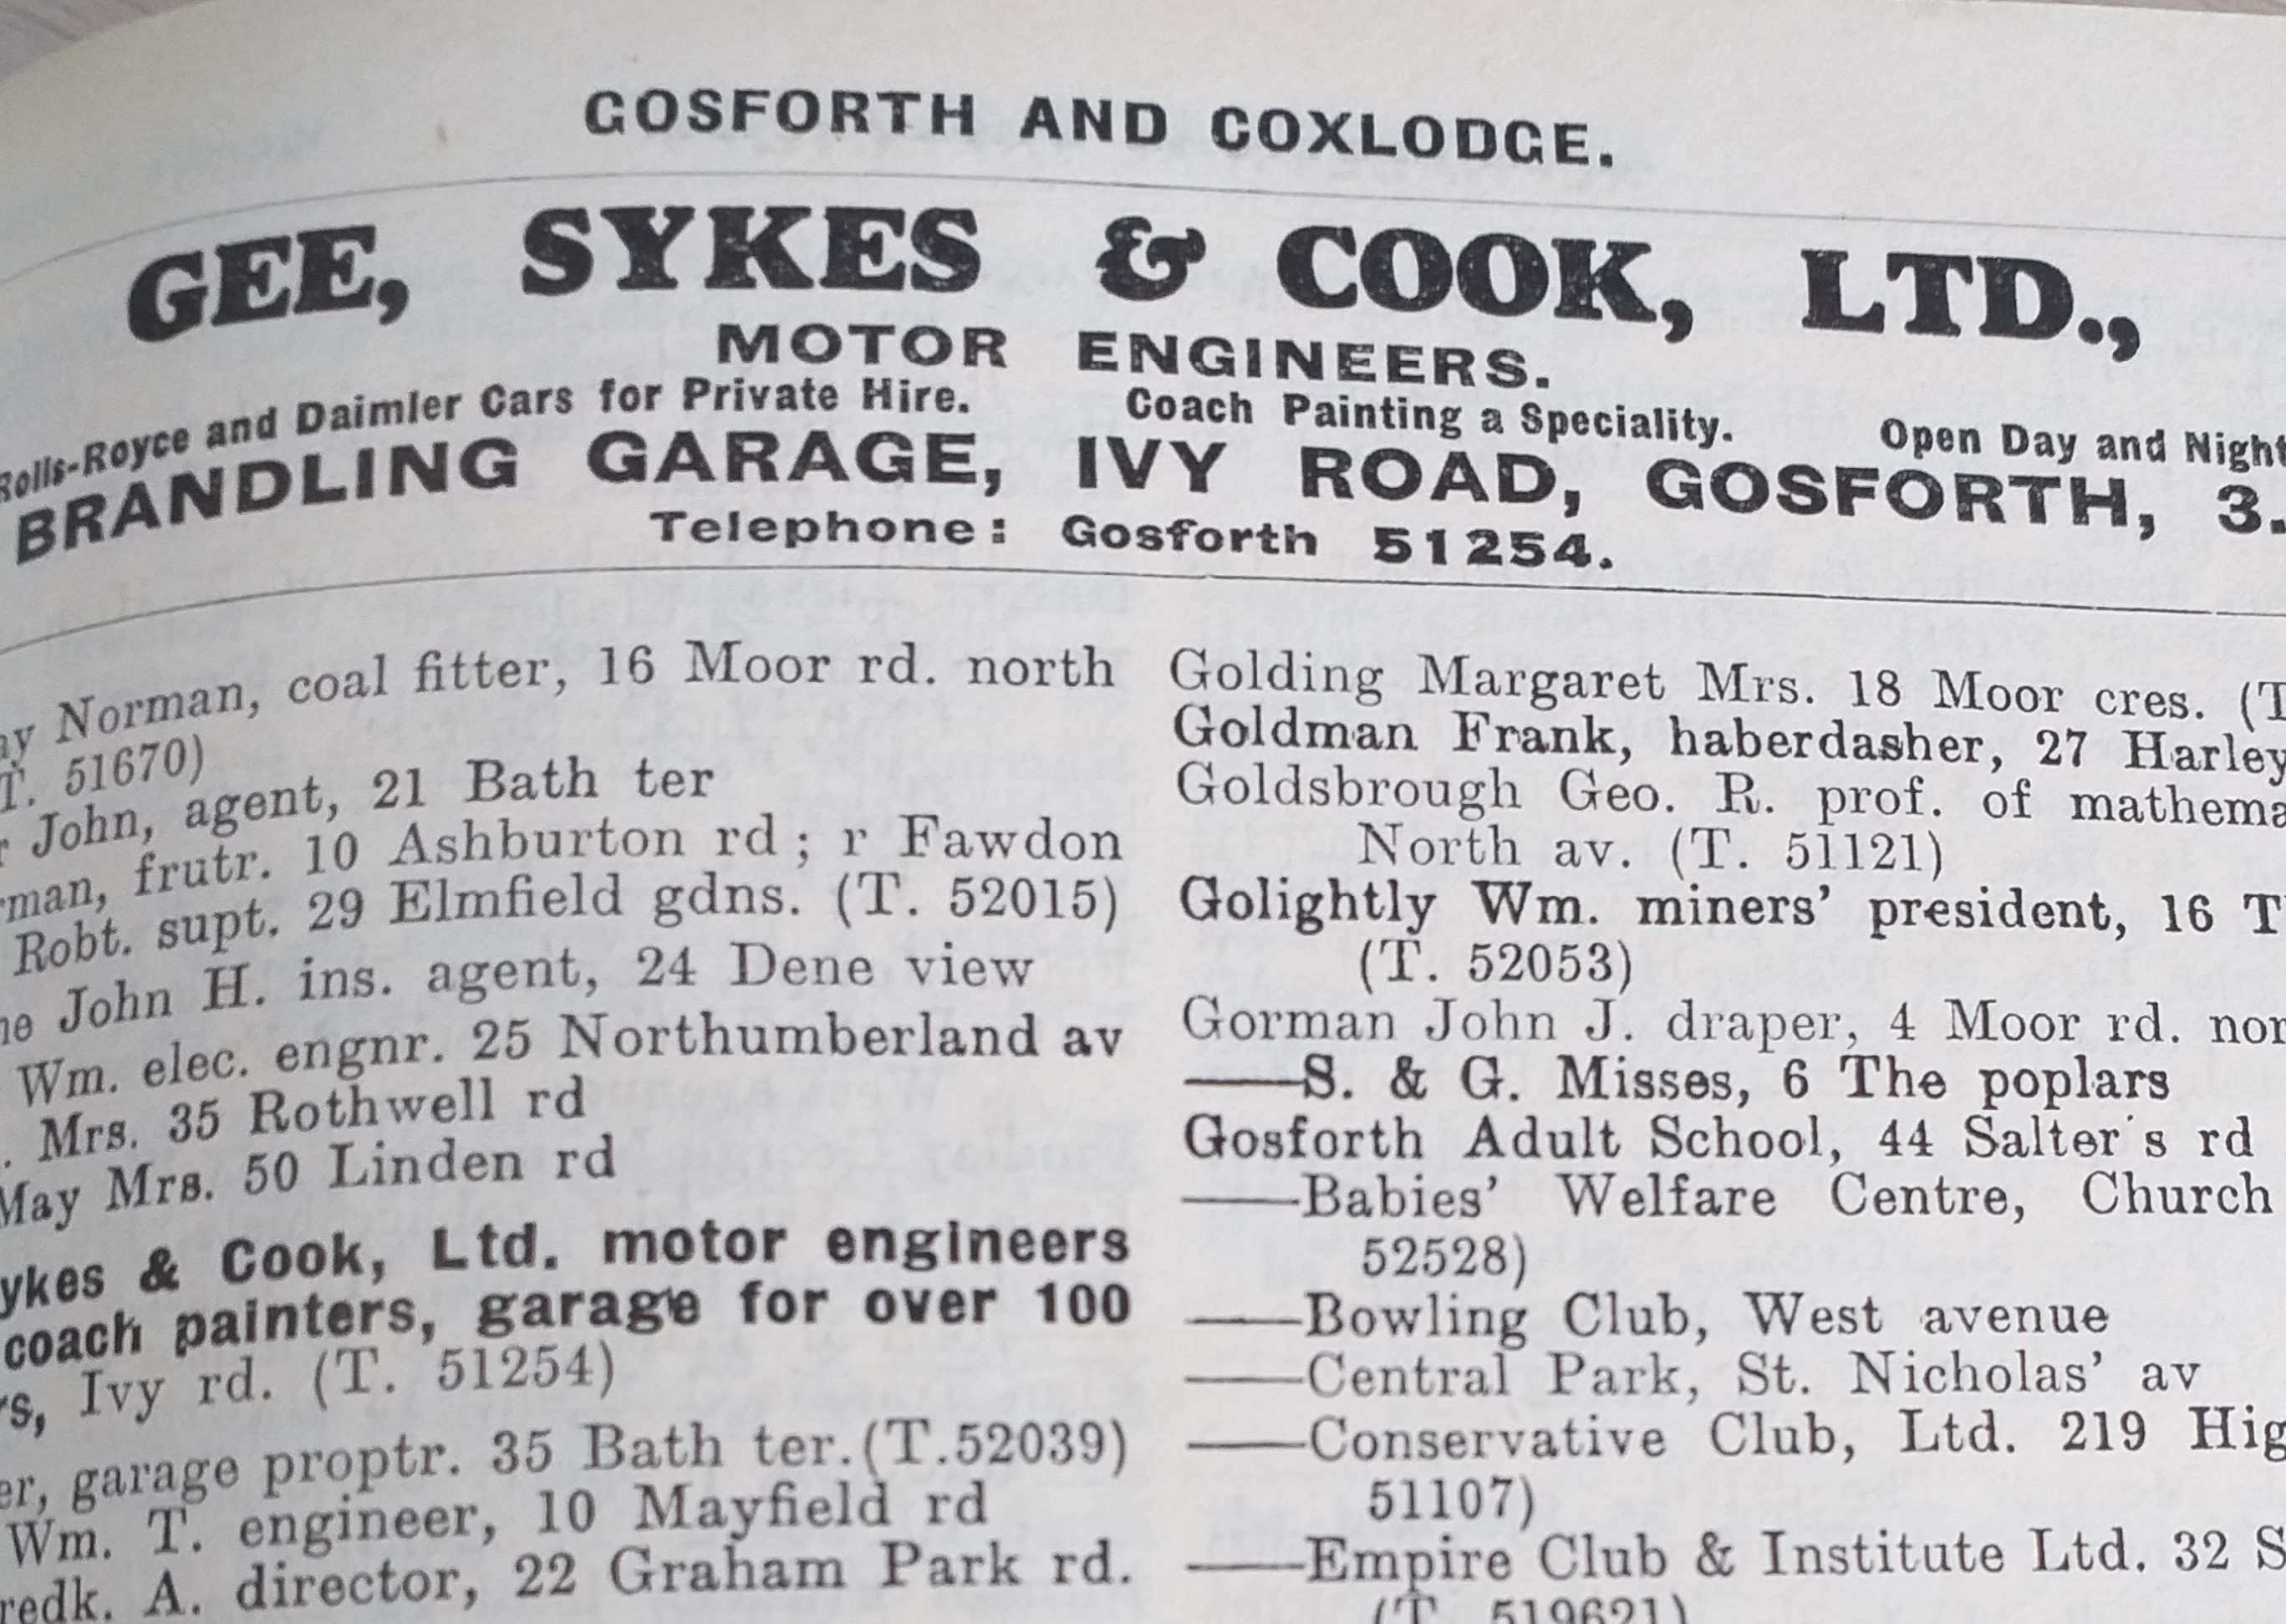 Advert for Gee Sykes & Cook Garage taken from a Gosforth and Coxlodge trade directory.